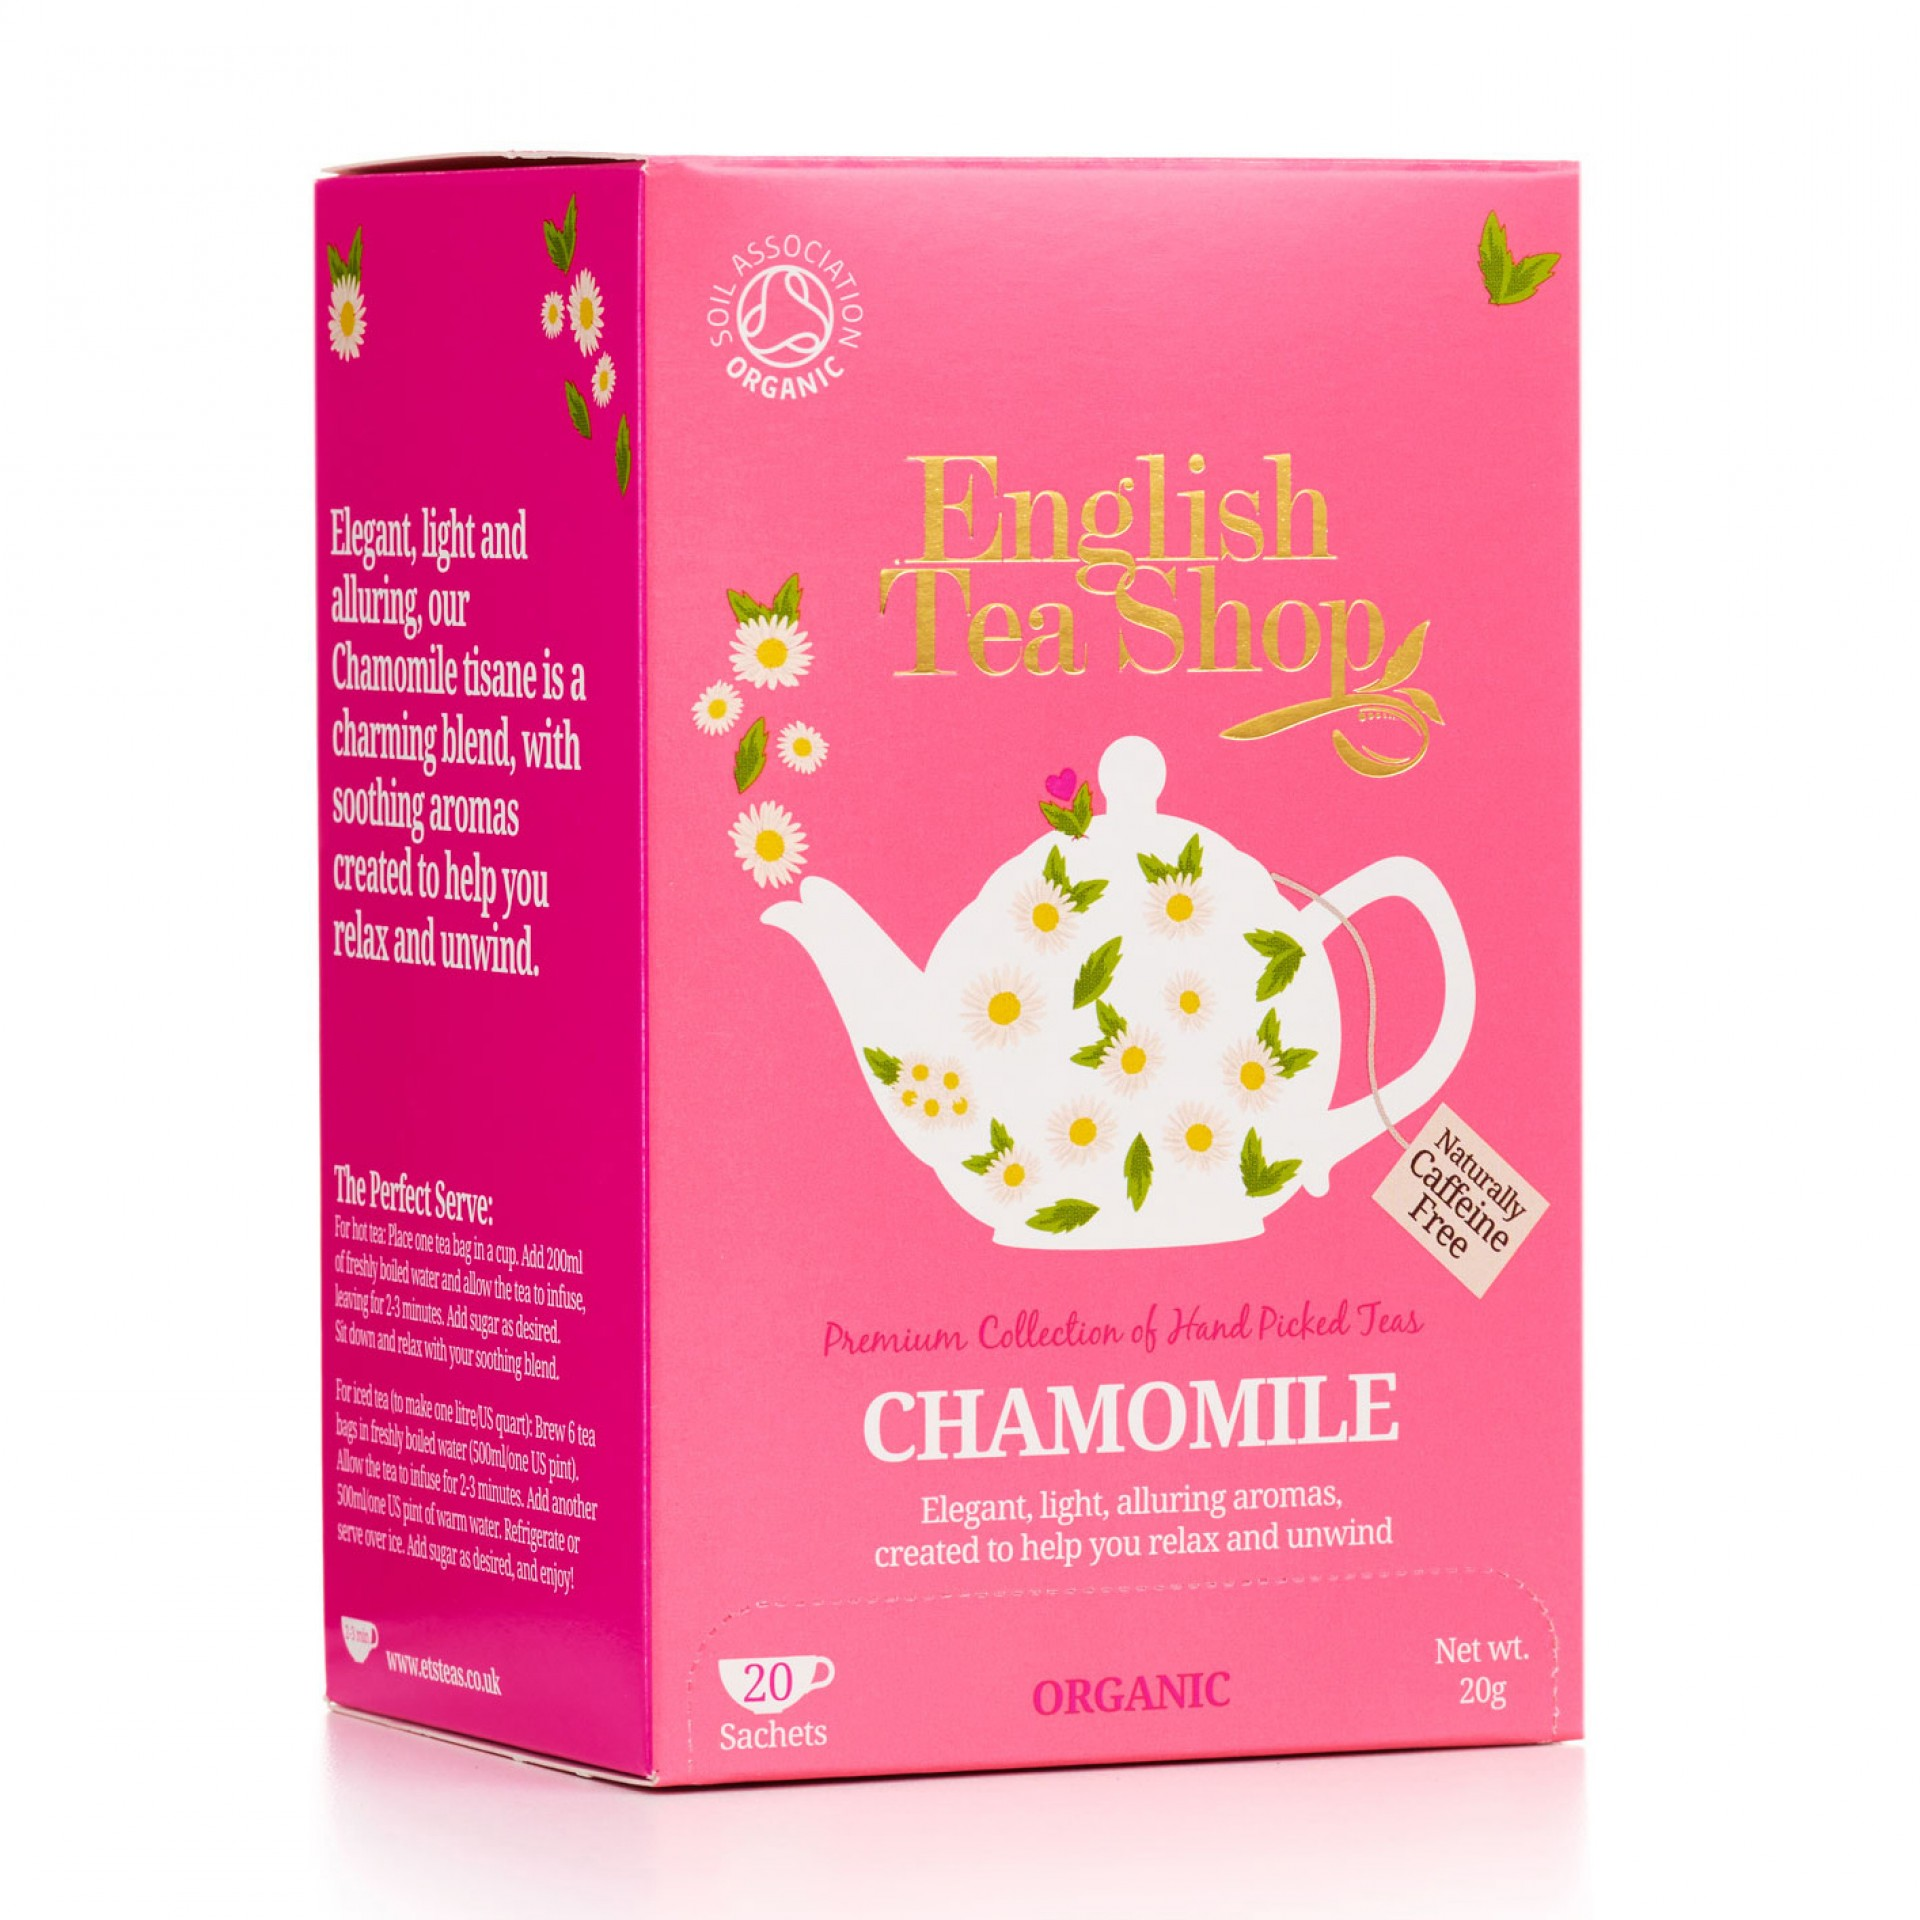 English Tea Shop - Chamomile Tag & Envelope Tea Bags